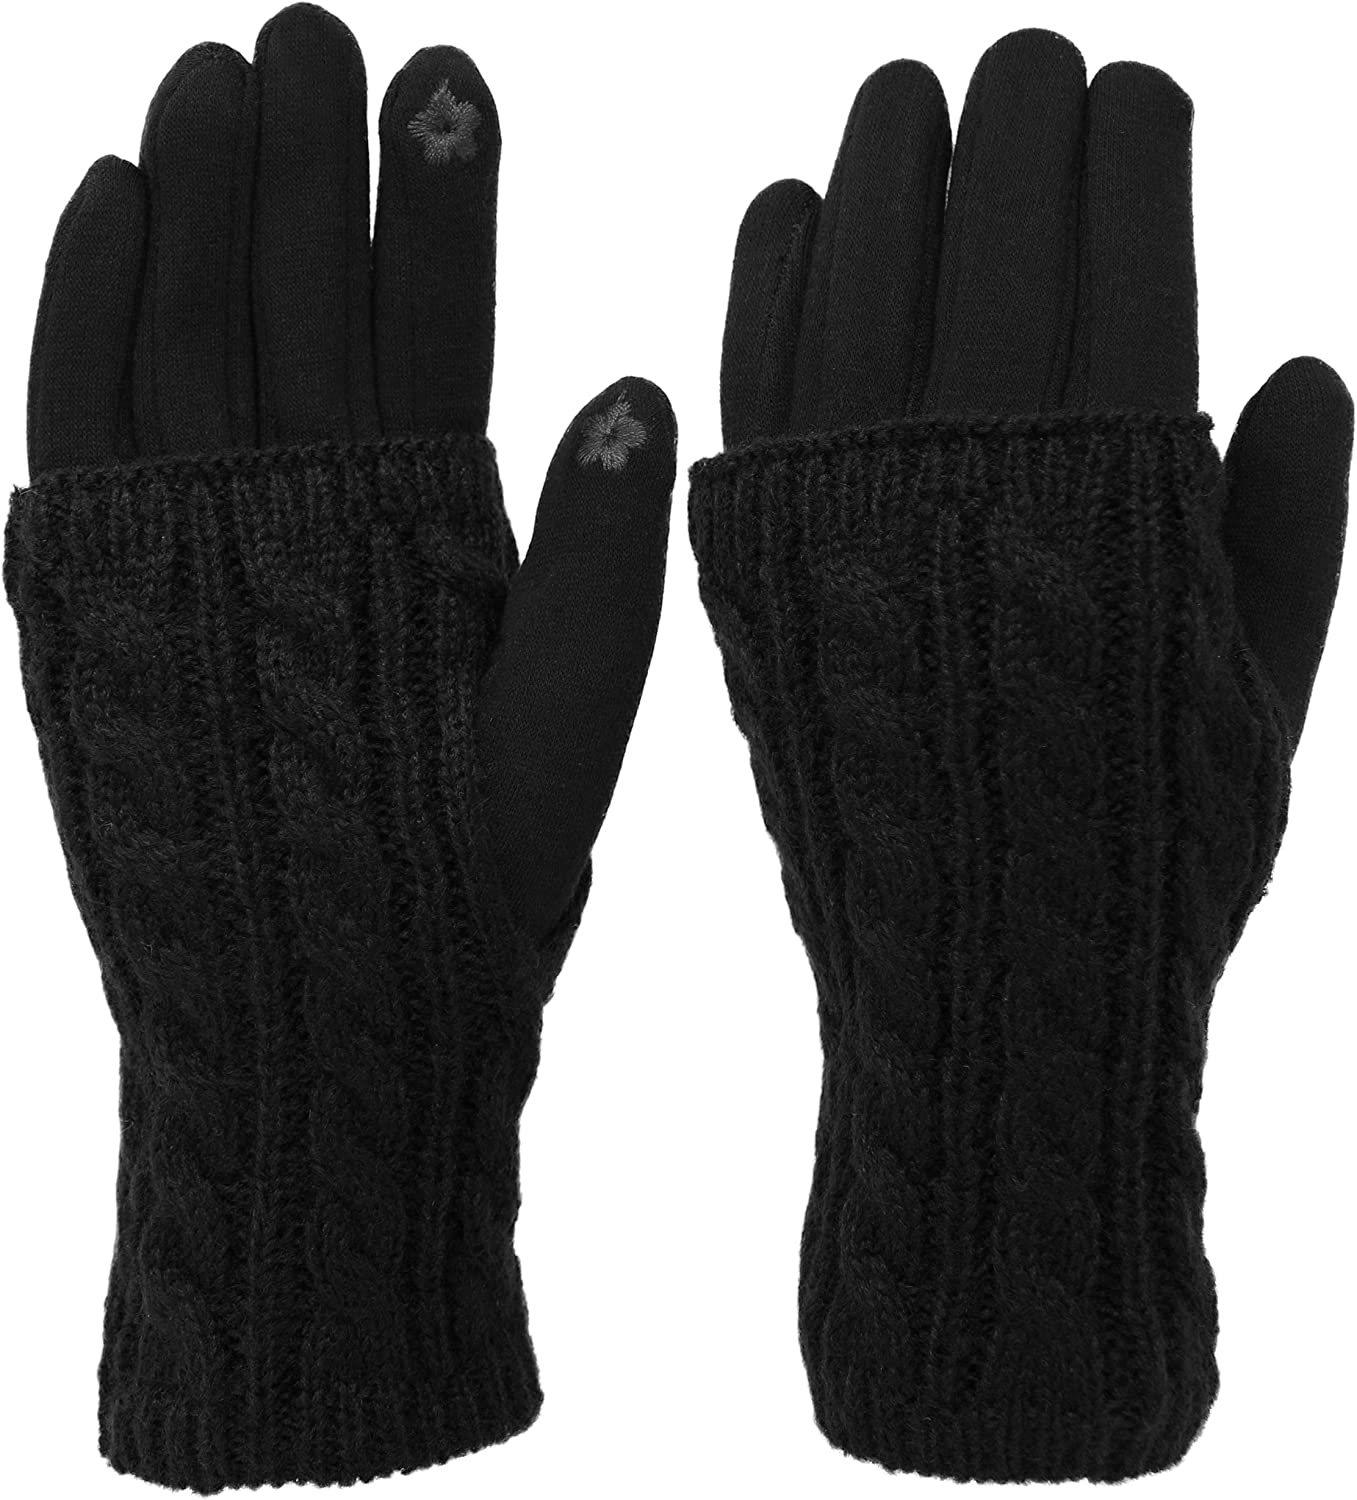 KMystic Women's Texting Gloves and Hand Warmer Set